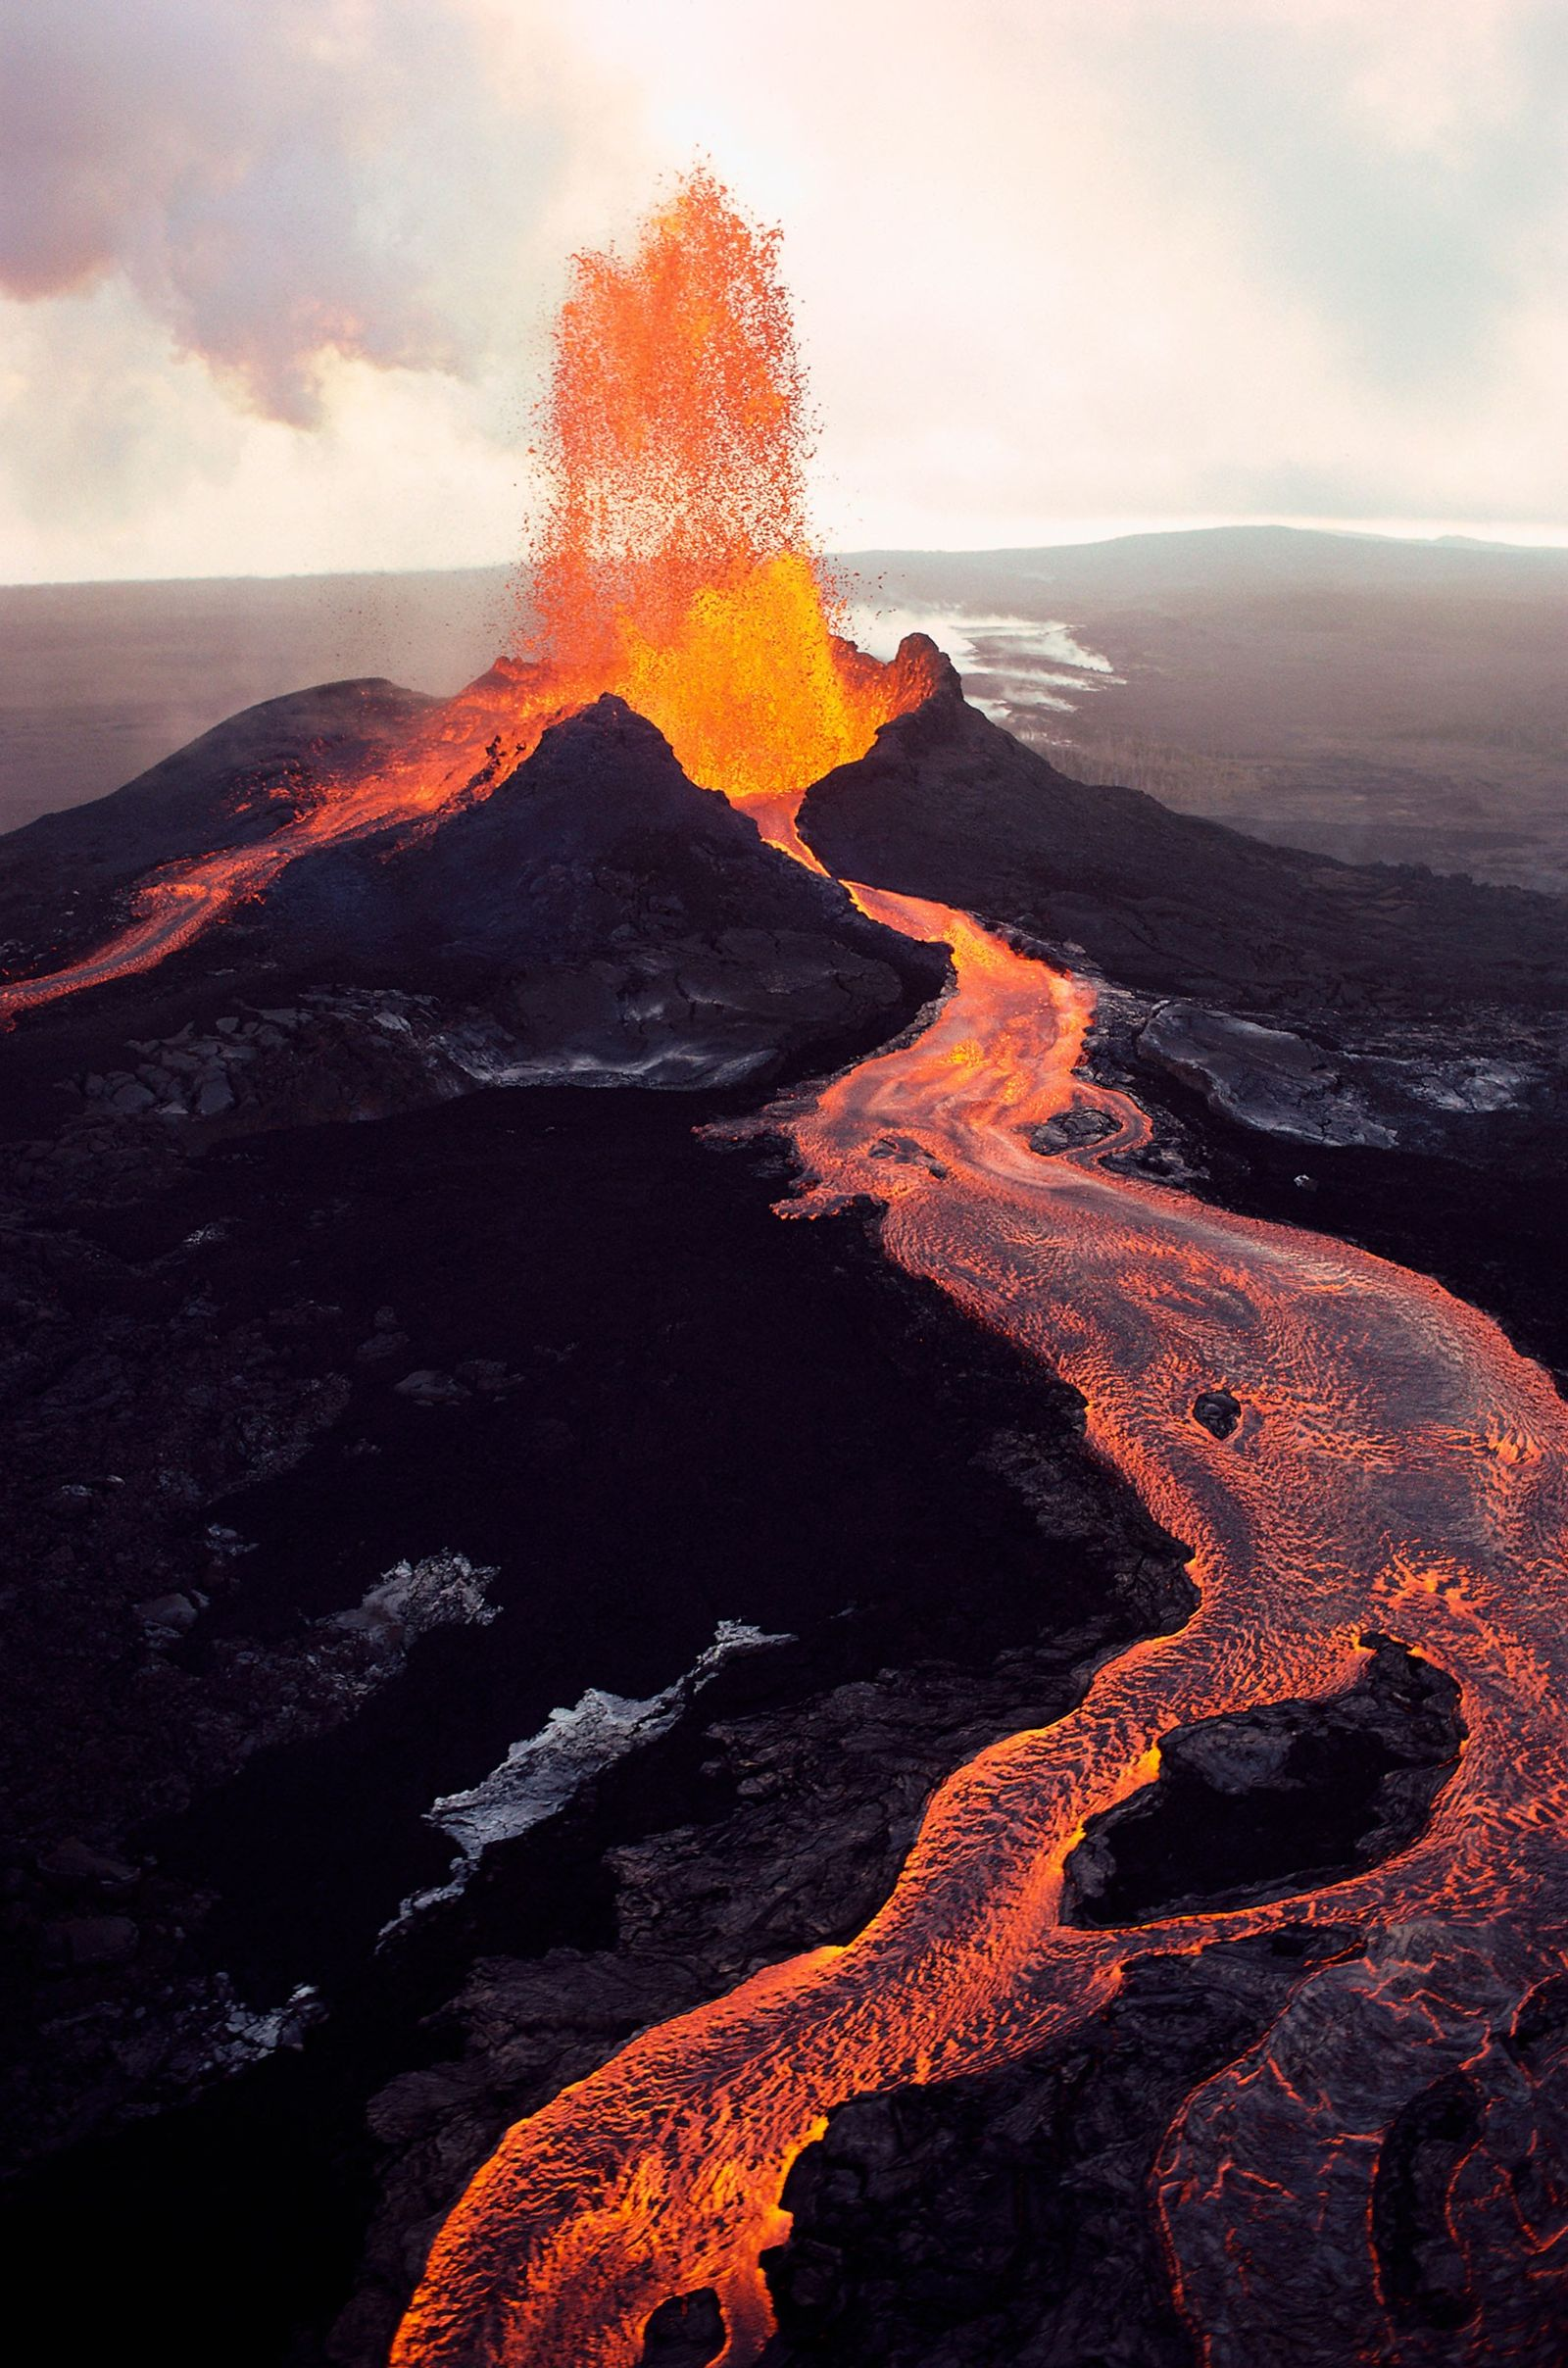 Can earthquakes trigger volcano eruptions? Here's the science.